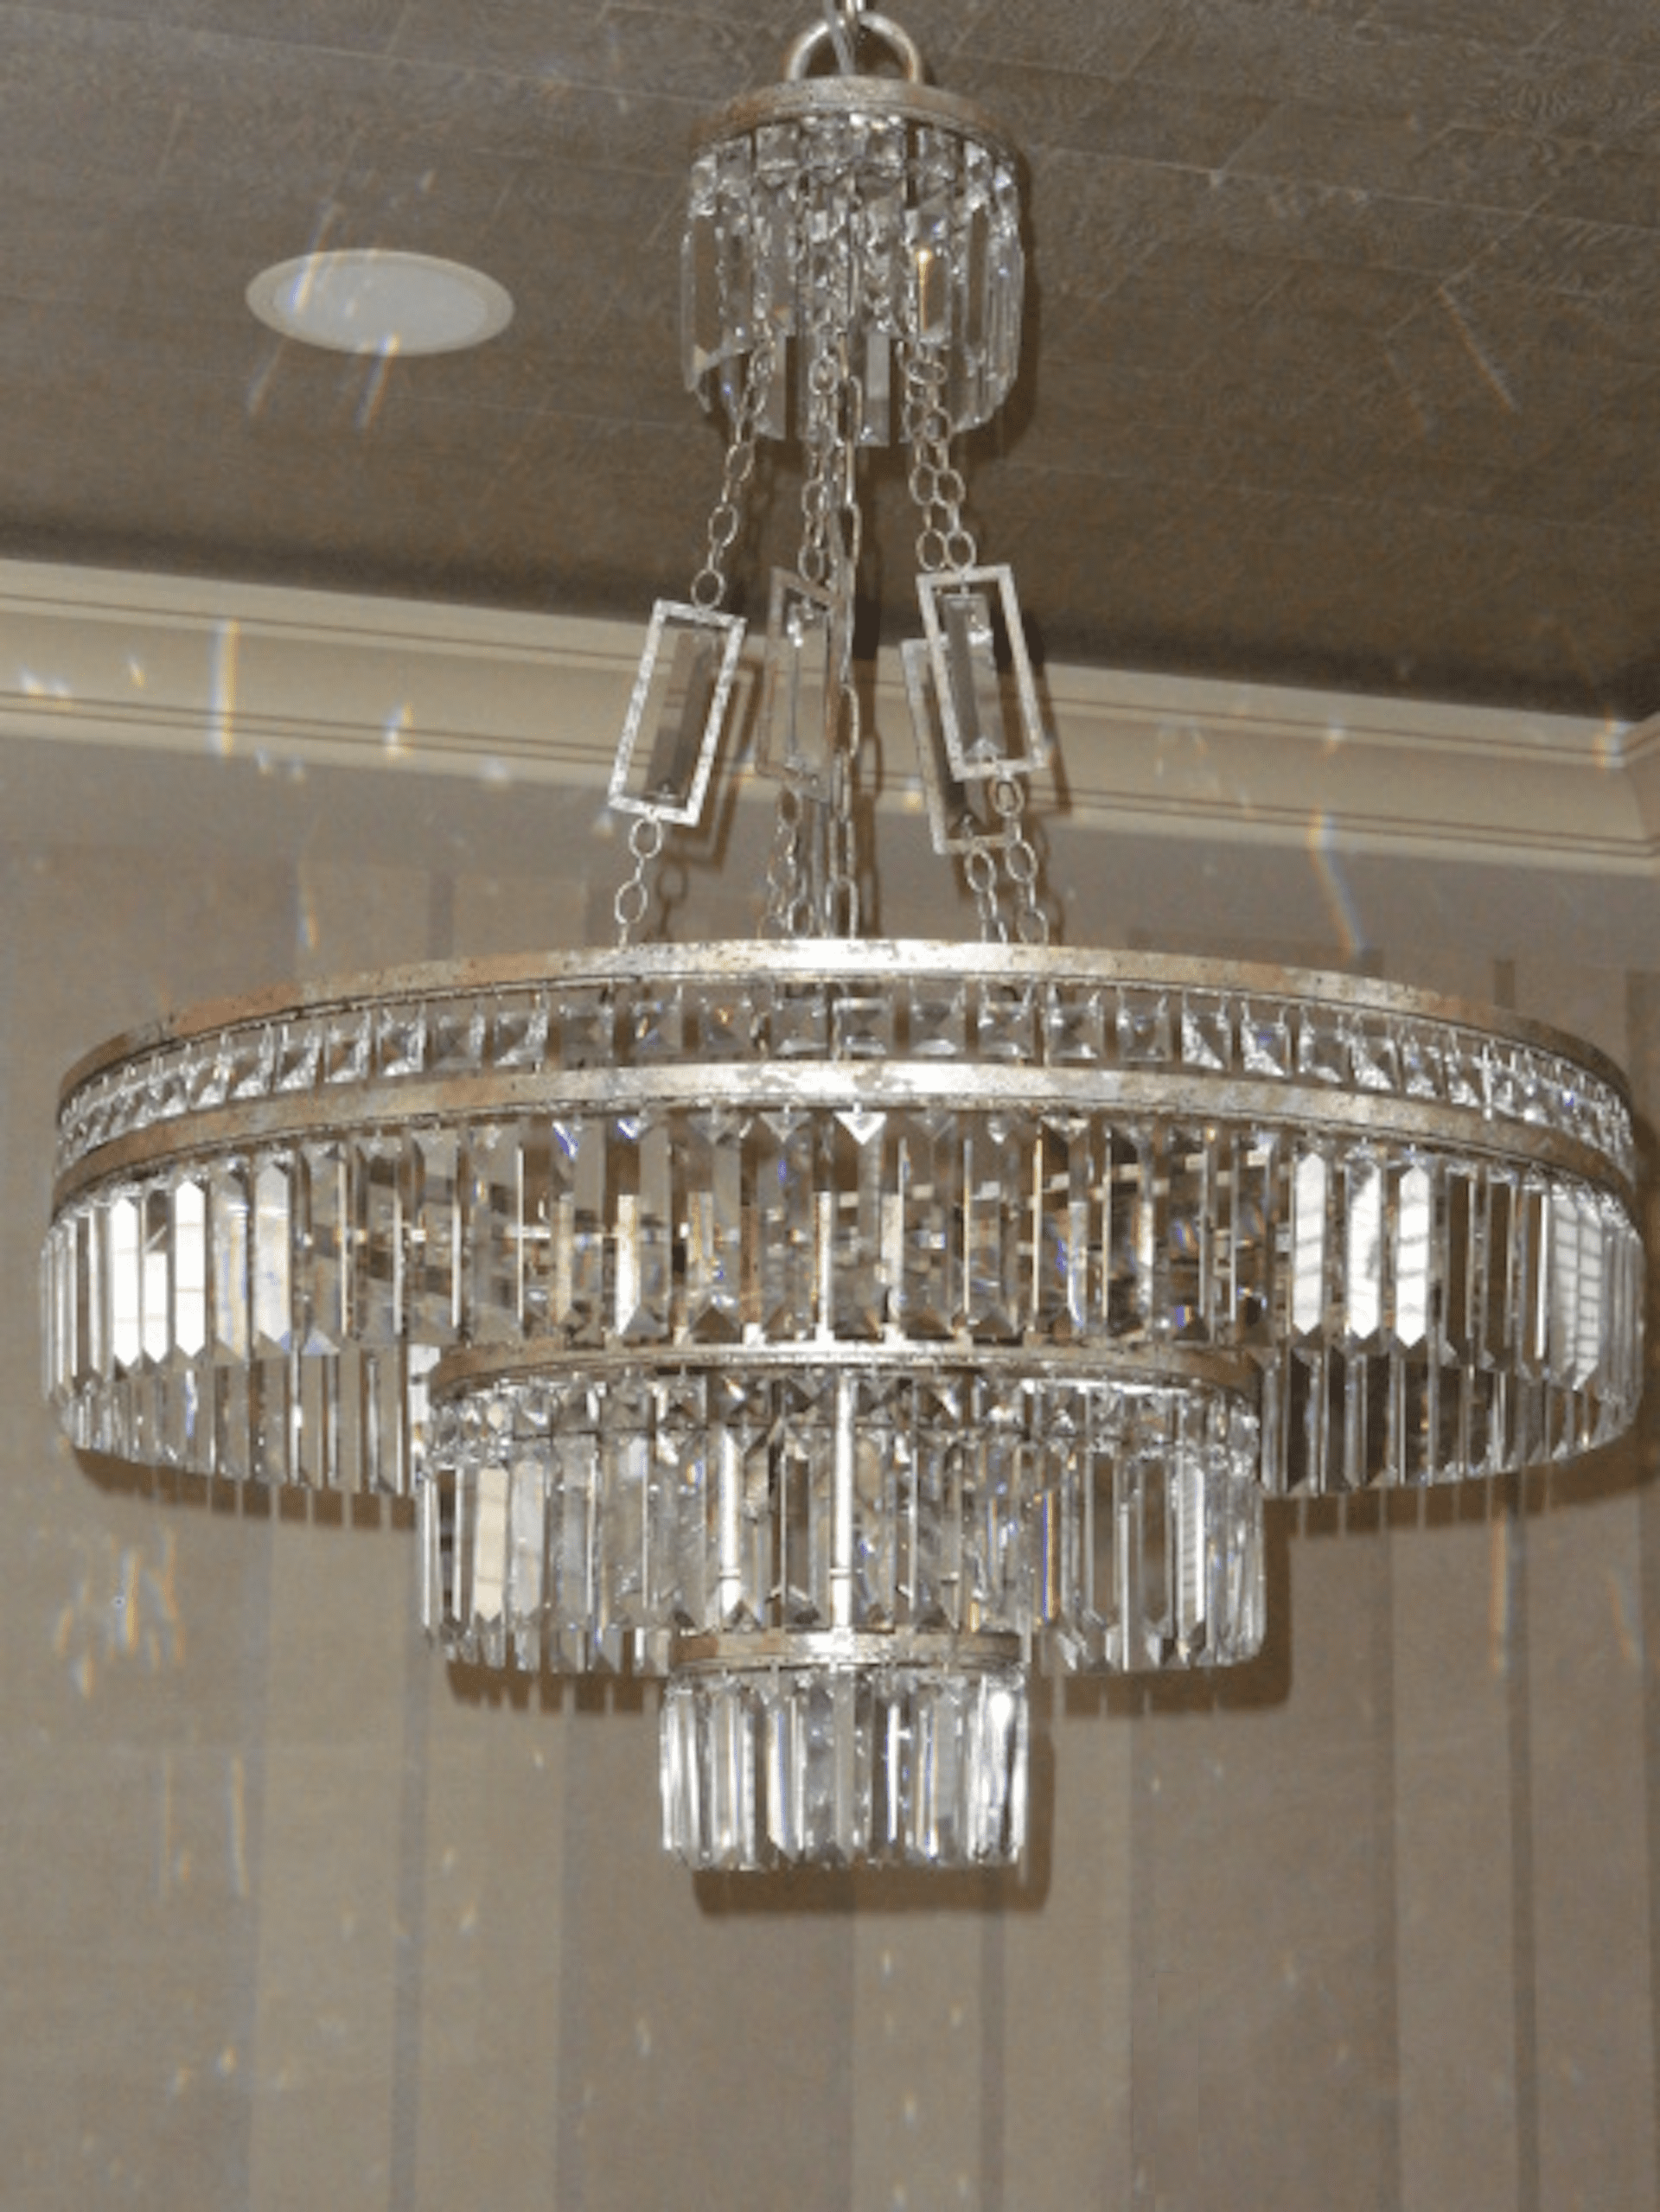 Chandelier Cleaning Executive Cleaning Services Inc – Crystal Chandelier Cleaning